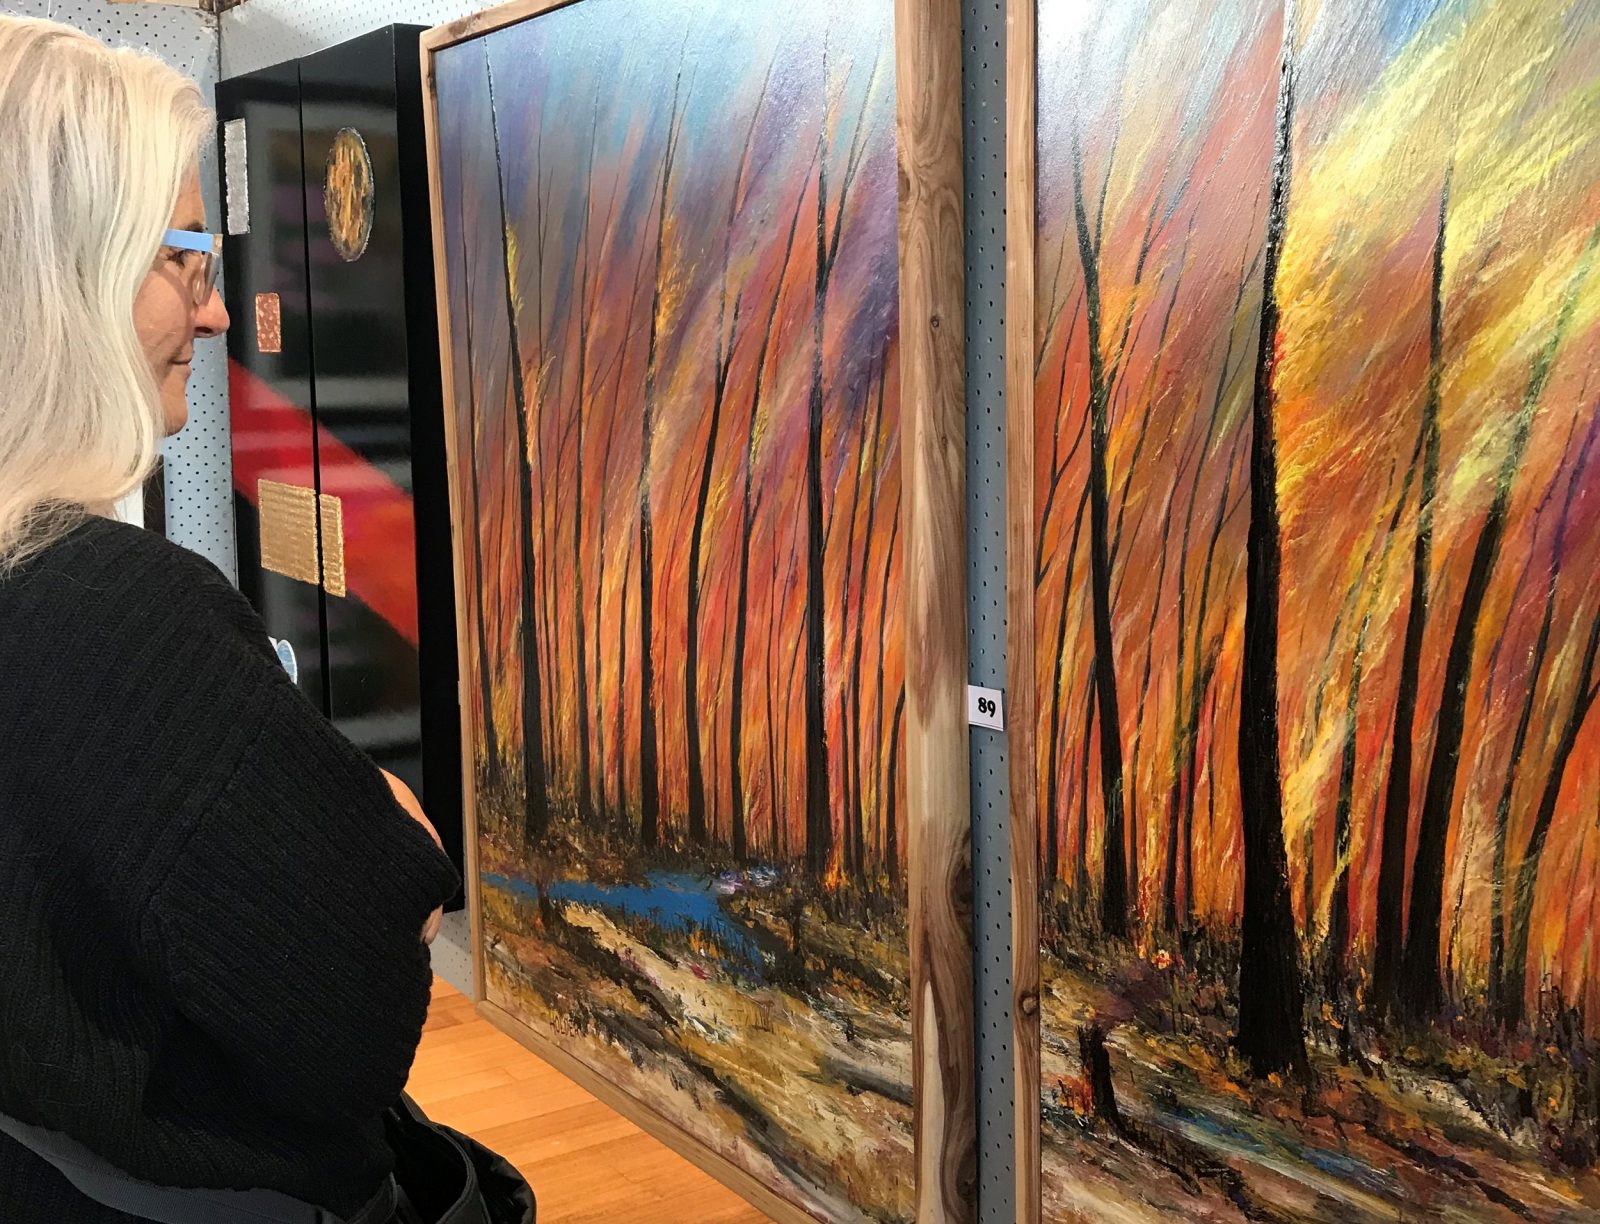 Pyrenees Art Exhibition